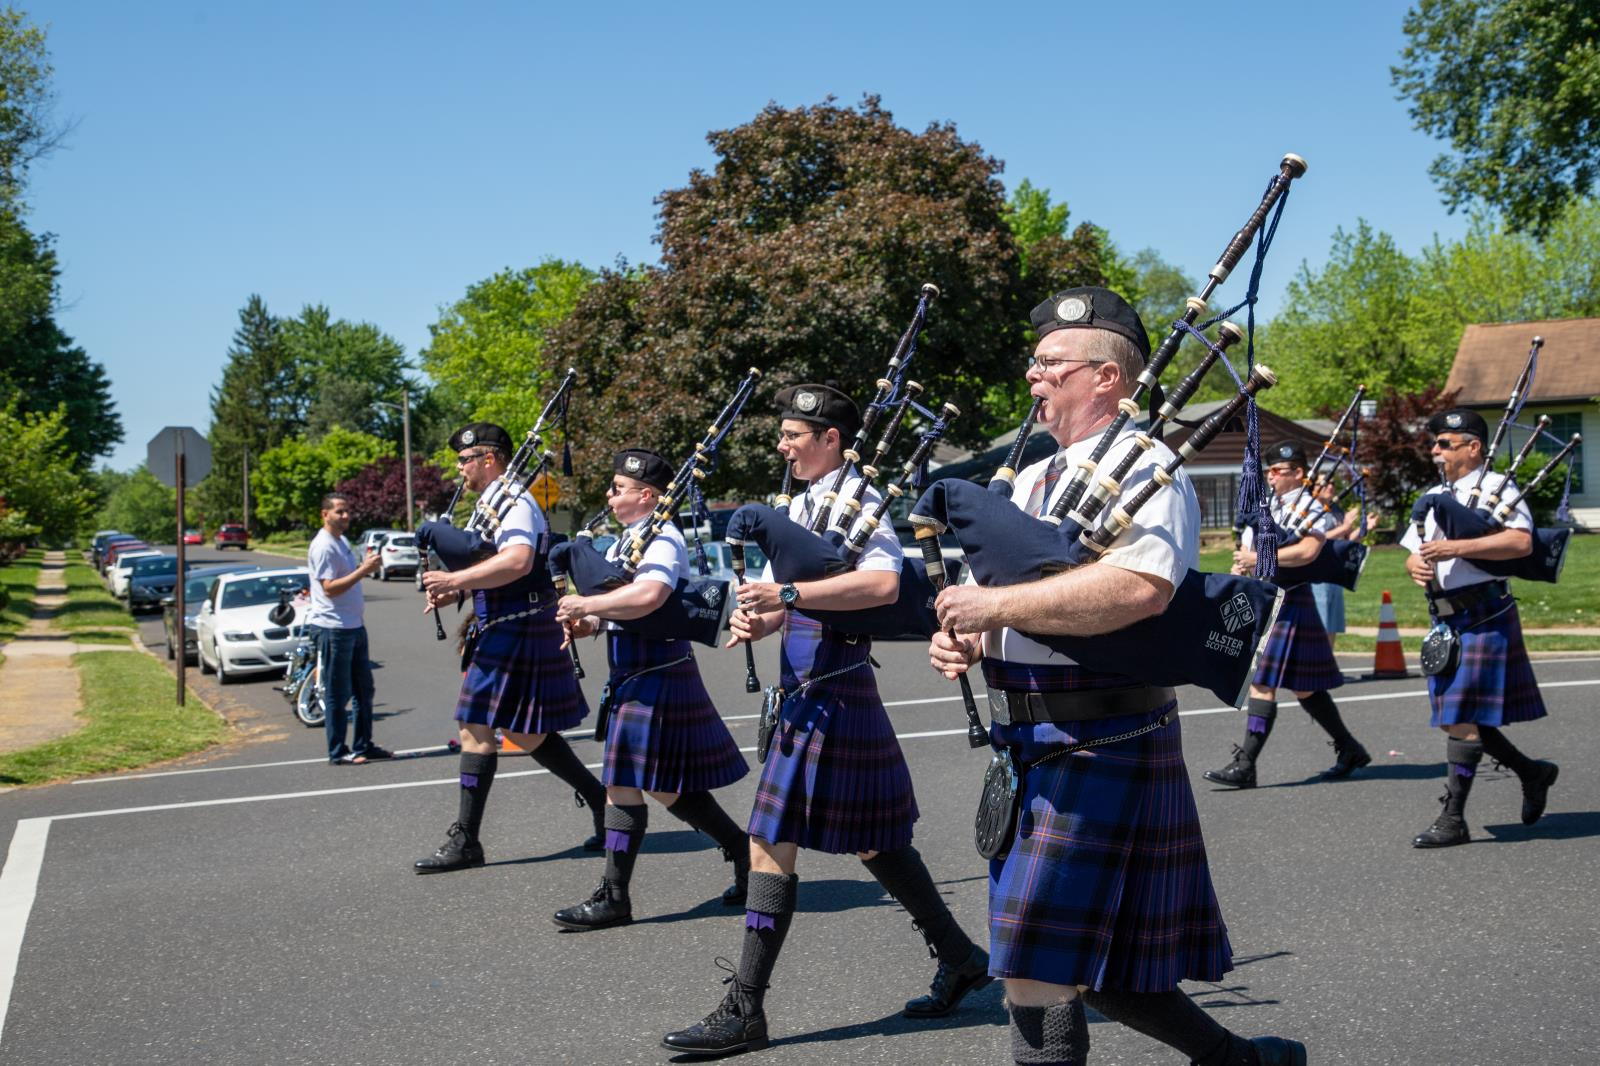 Bagpipers on Memorial Day